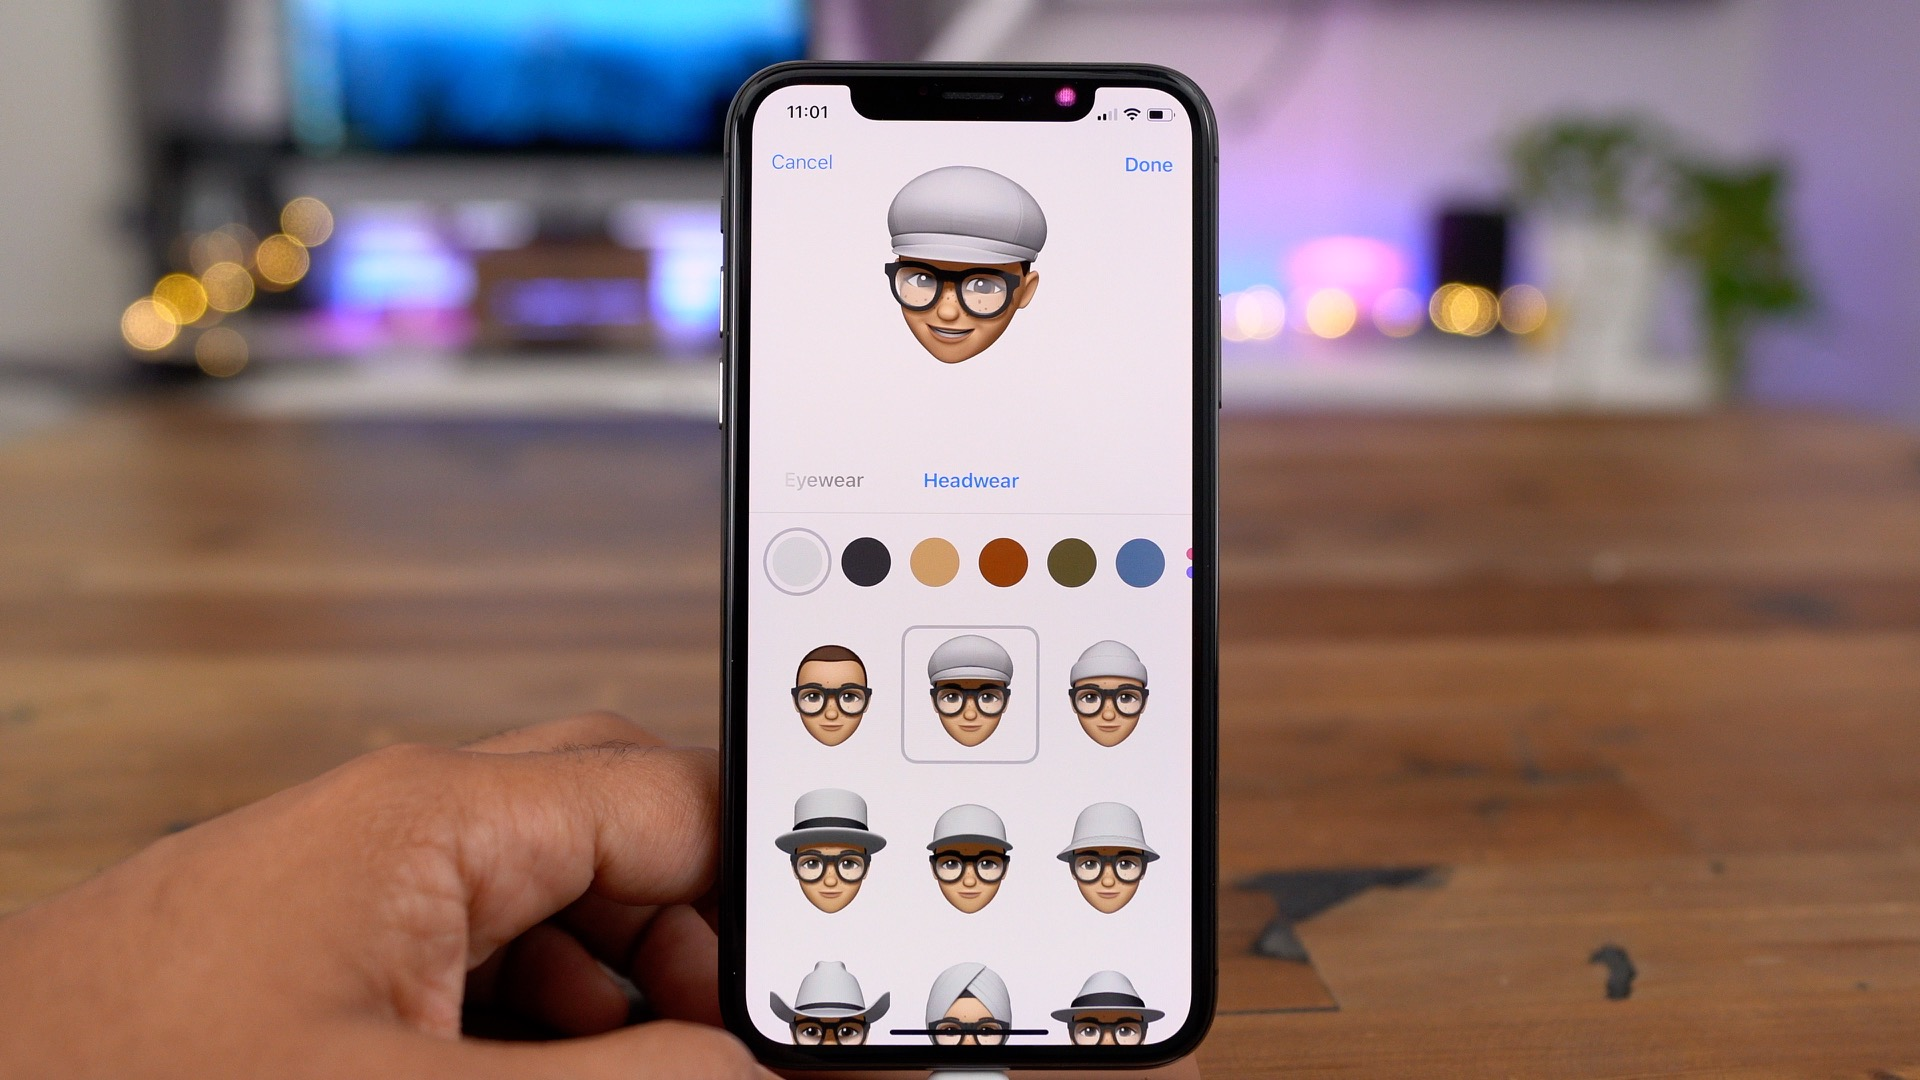 iOS 12: How to edit, duplicate, and delete Memoij on iPhone